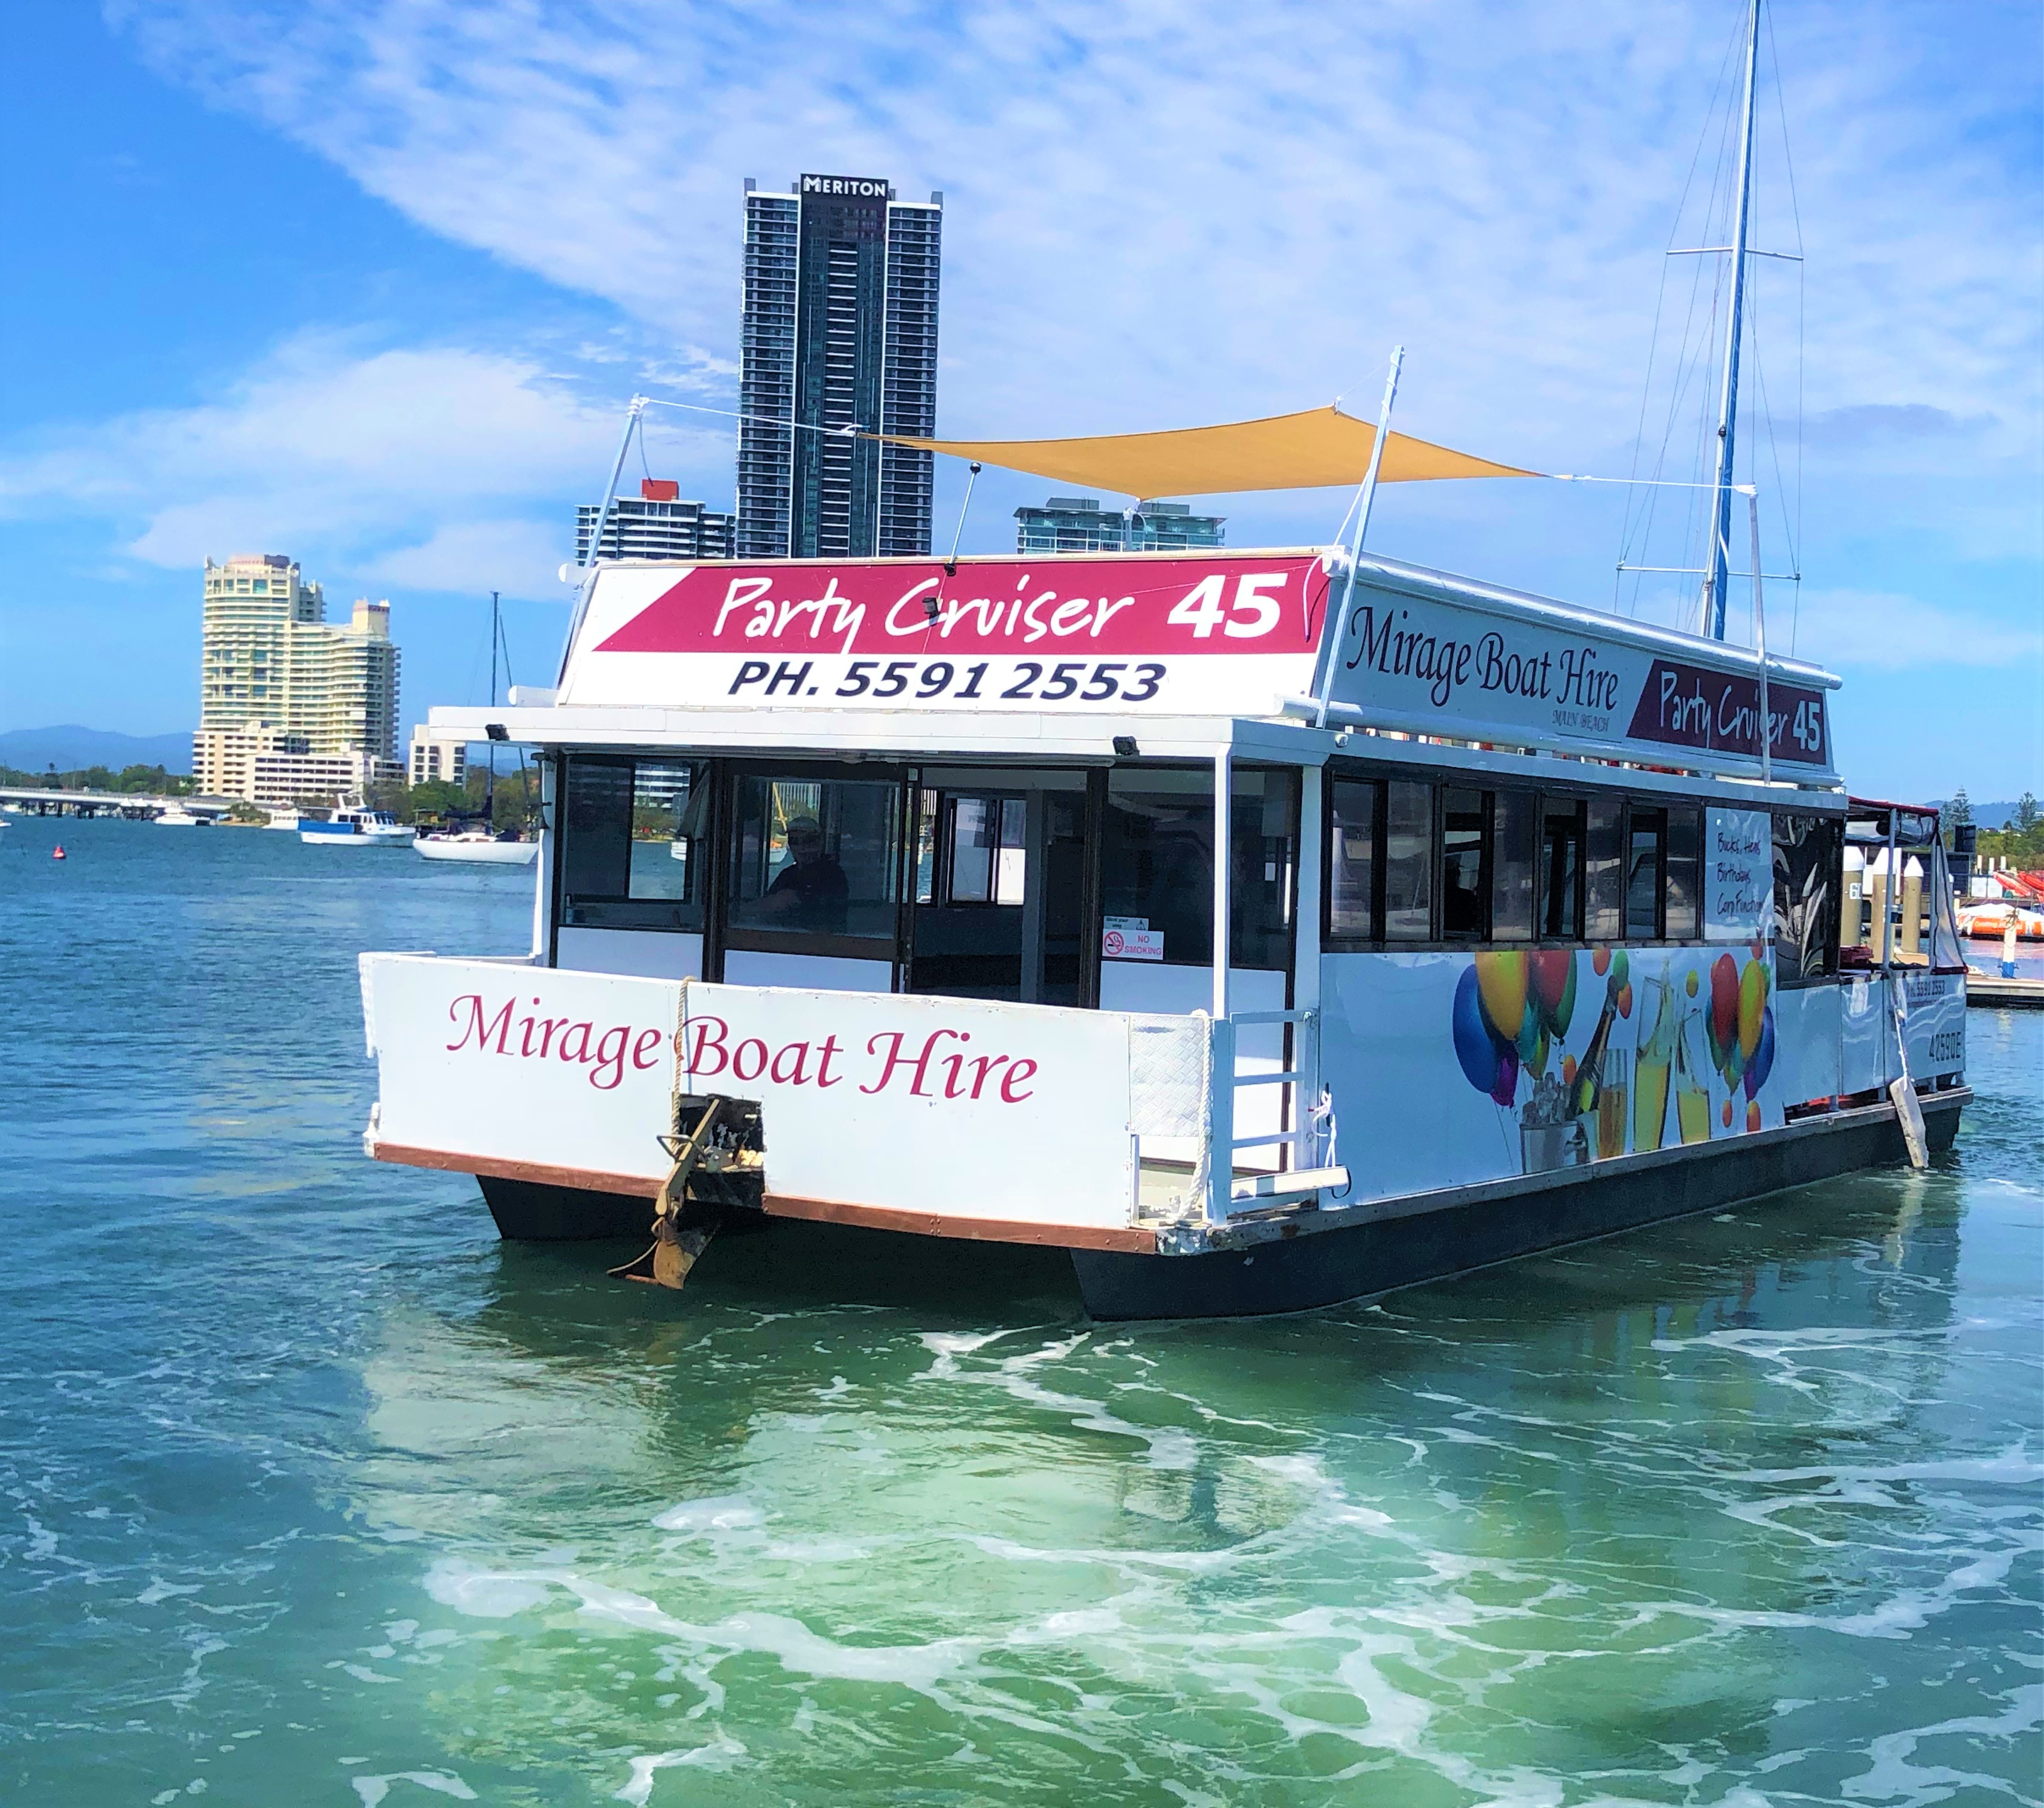 Mirage Boat Hire - ACT Tourism